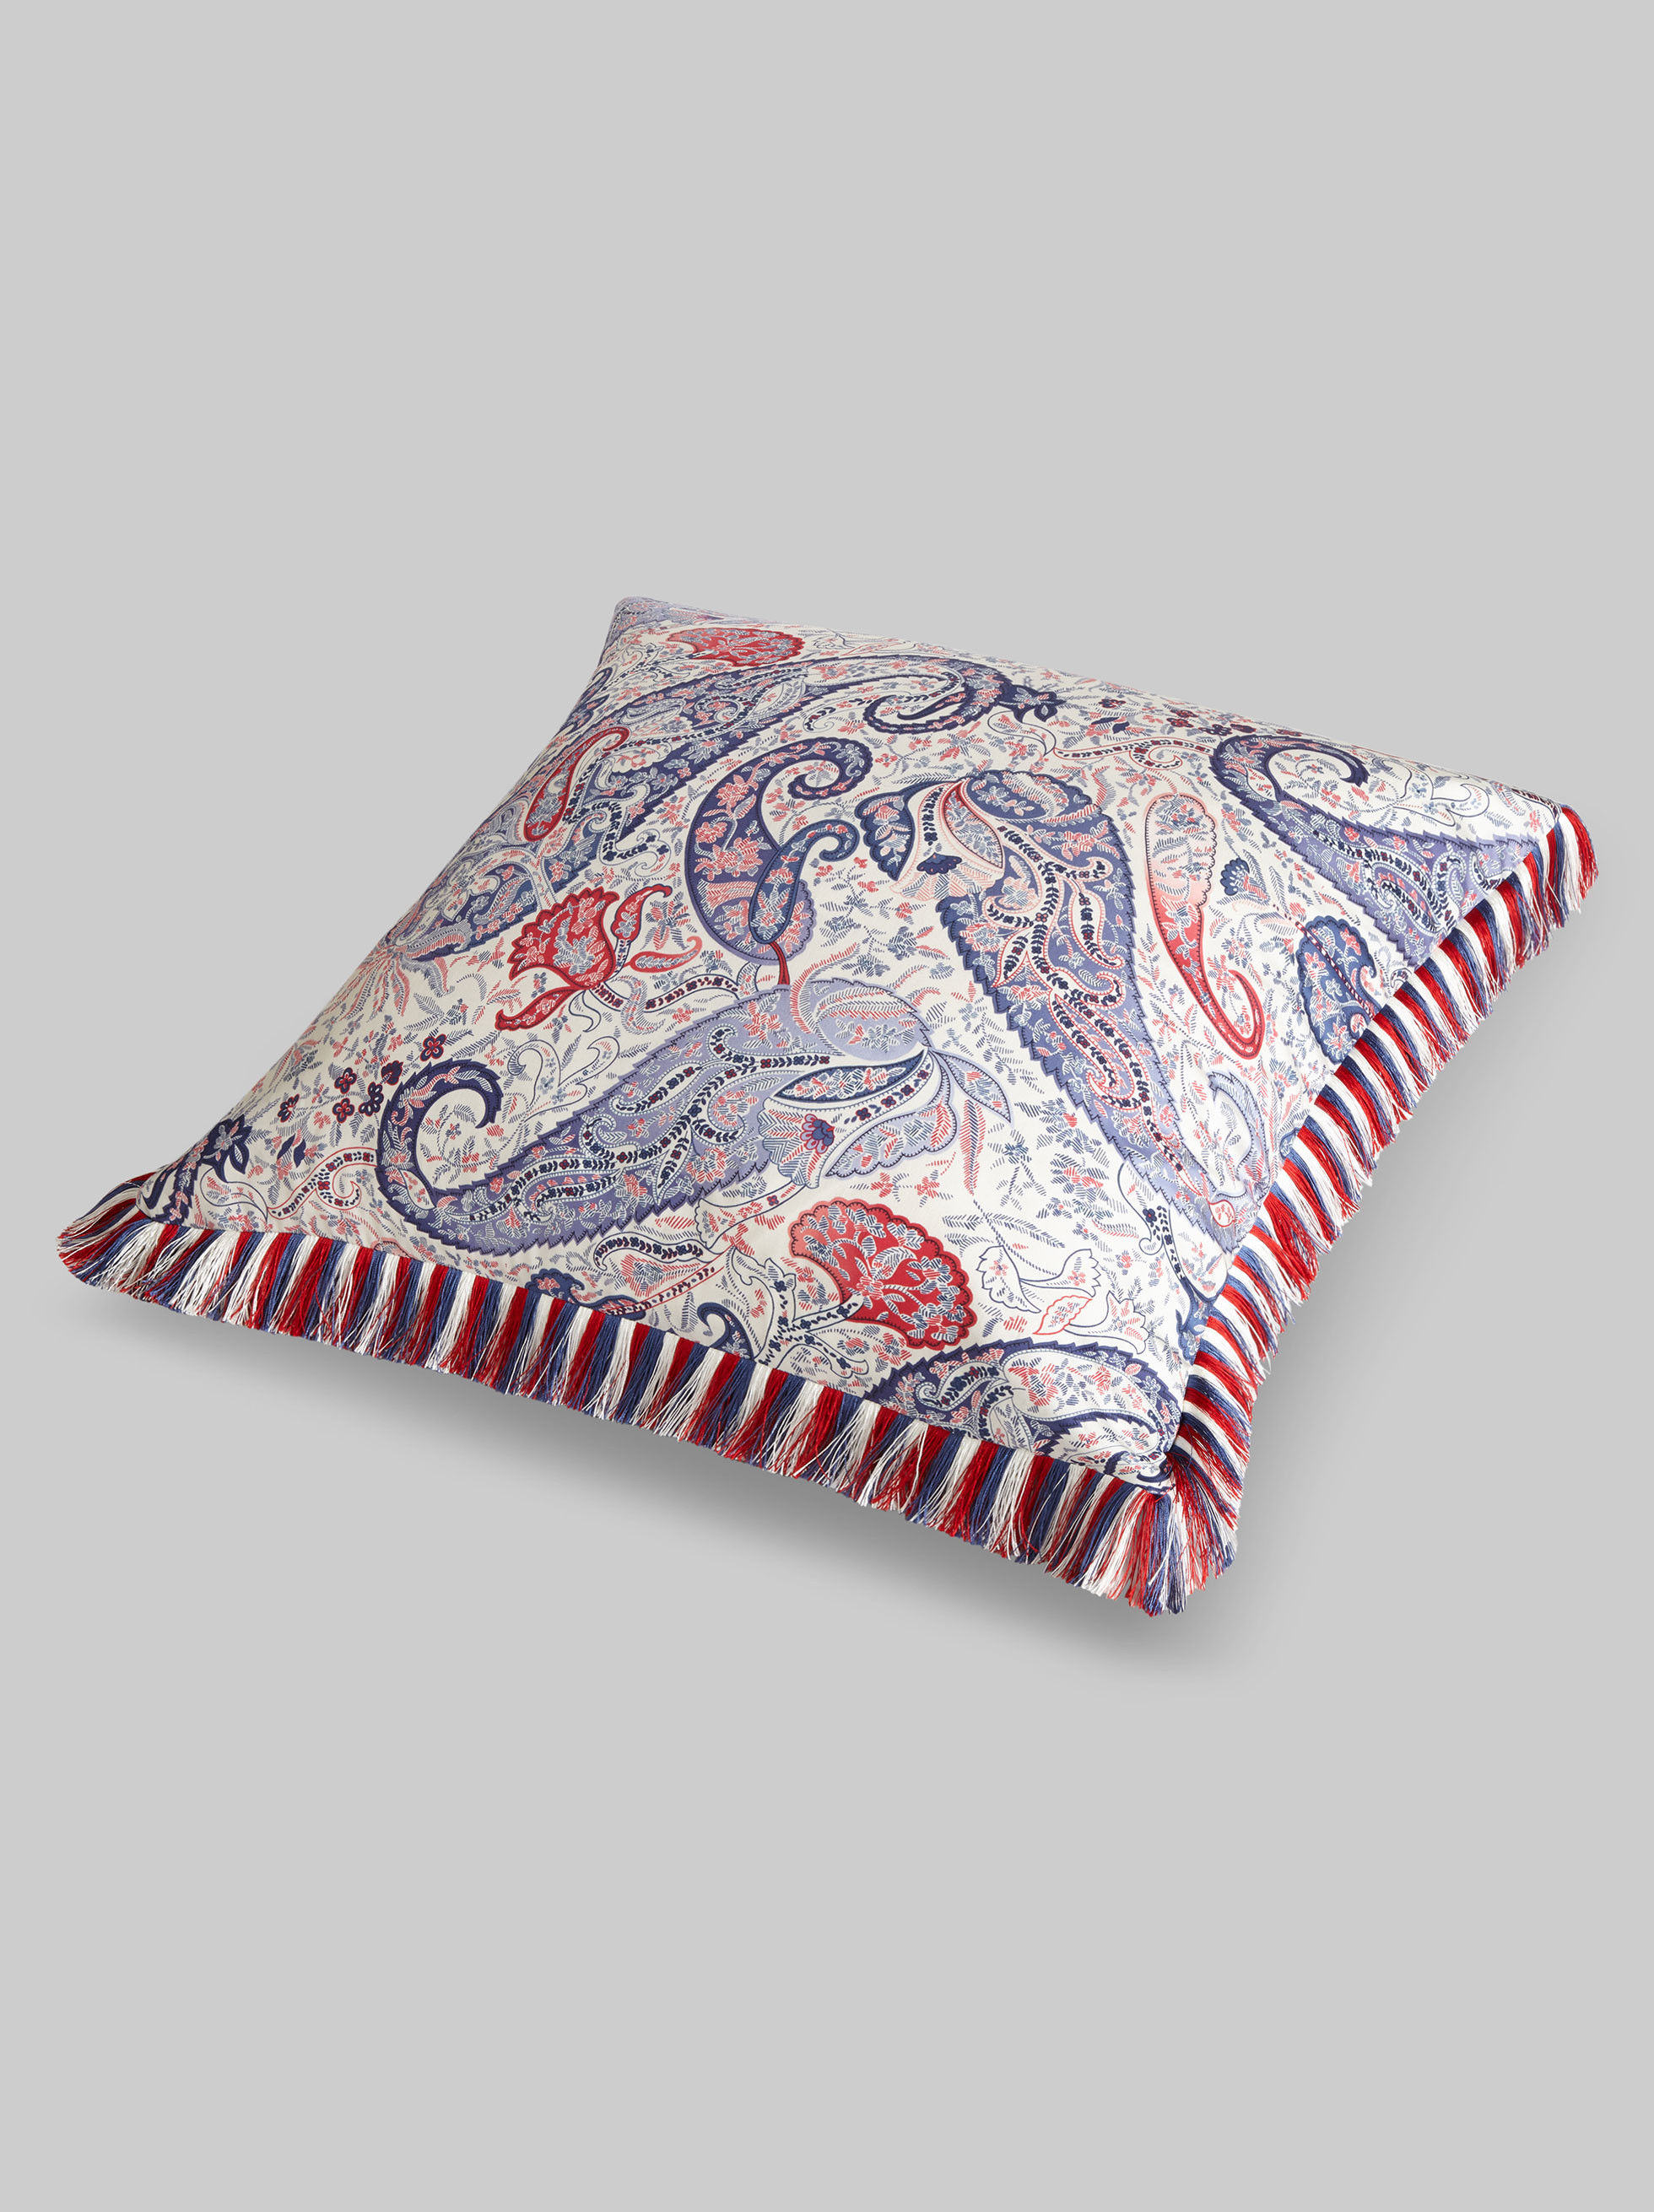 CUSHION WITH FRINGE AND PAISLEY PATTERNS